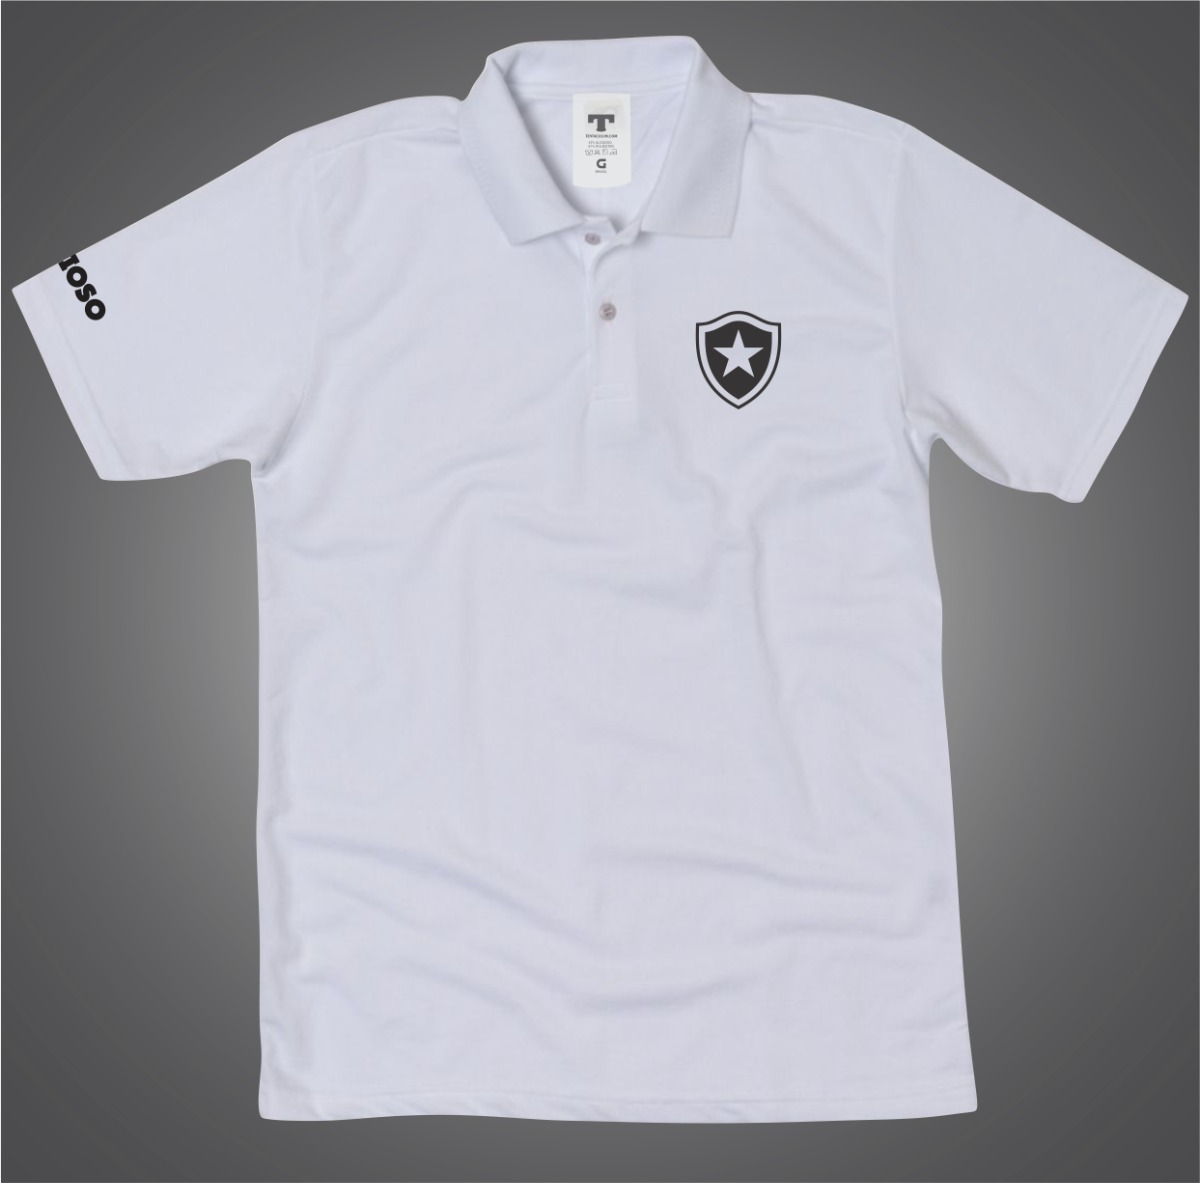 8e90791bc7 Camisa Polo Branca Do Botafogo